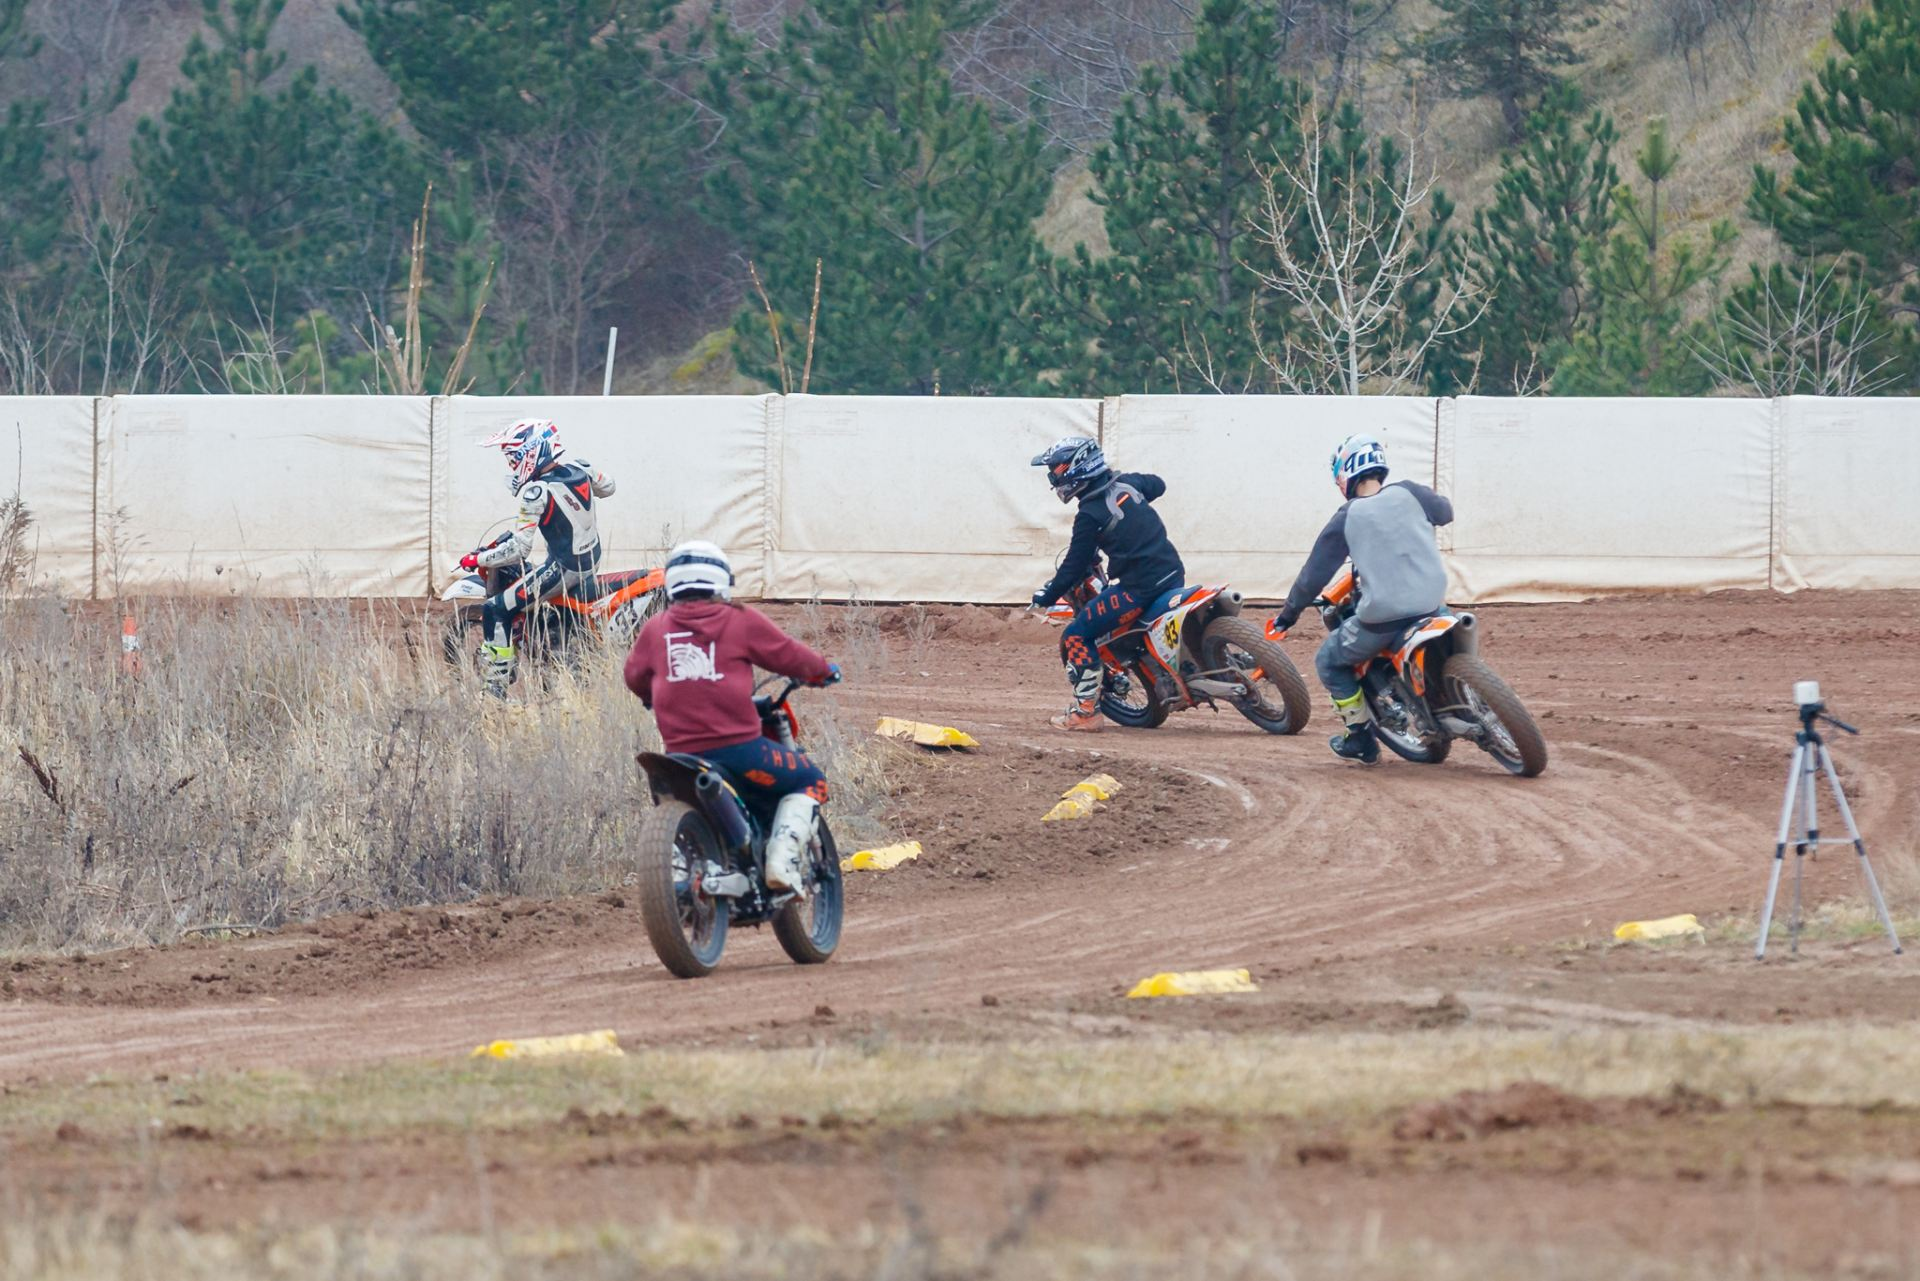 Flattrack - Trainingsrunden mit Instruktion